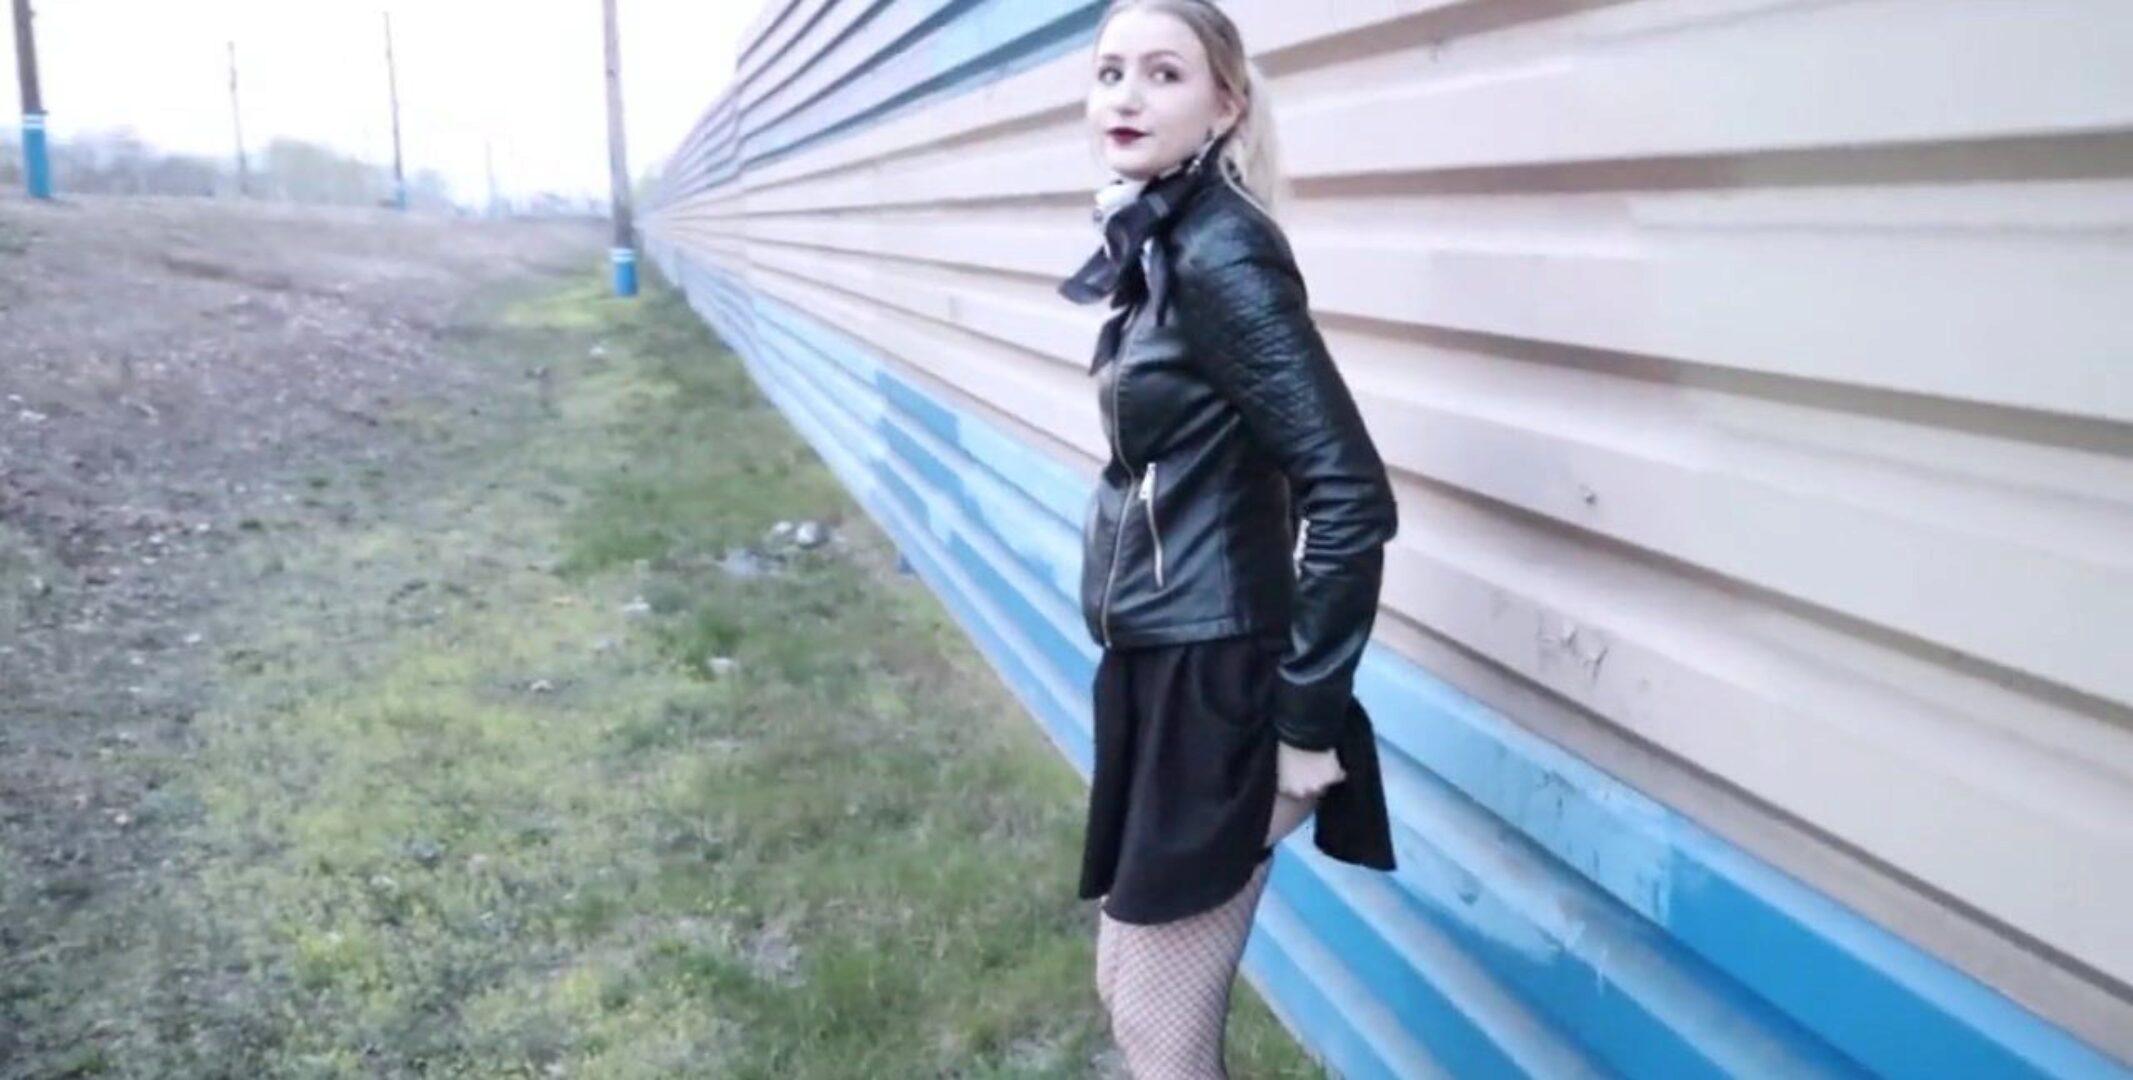 Real Public Sex near the Railroad | CUM IN PANTIES